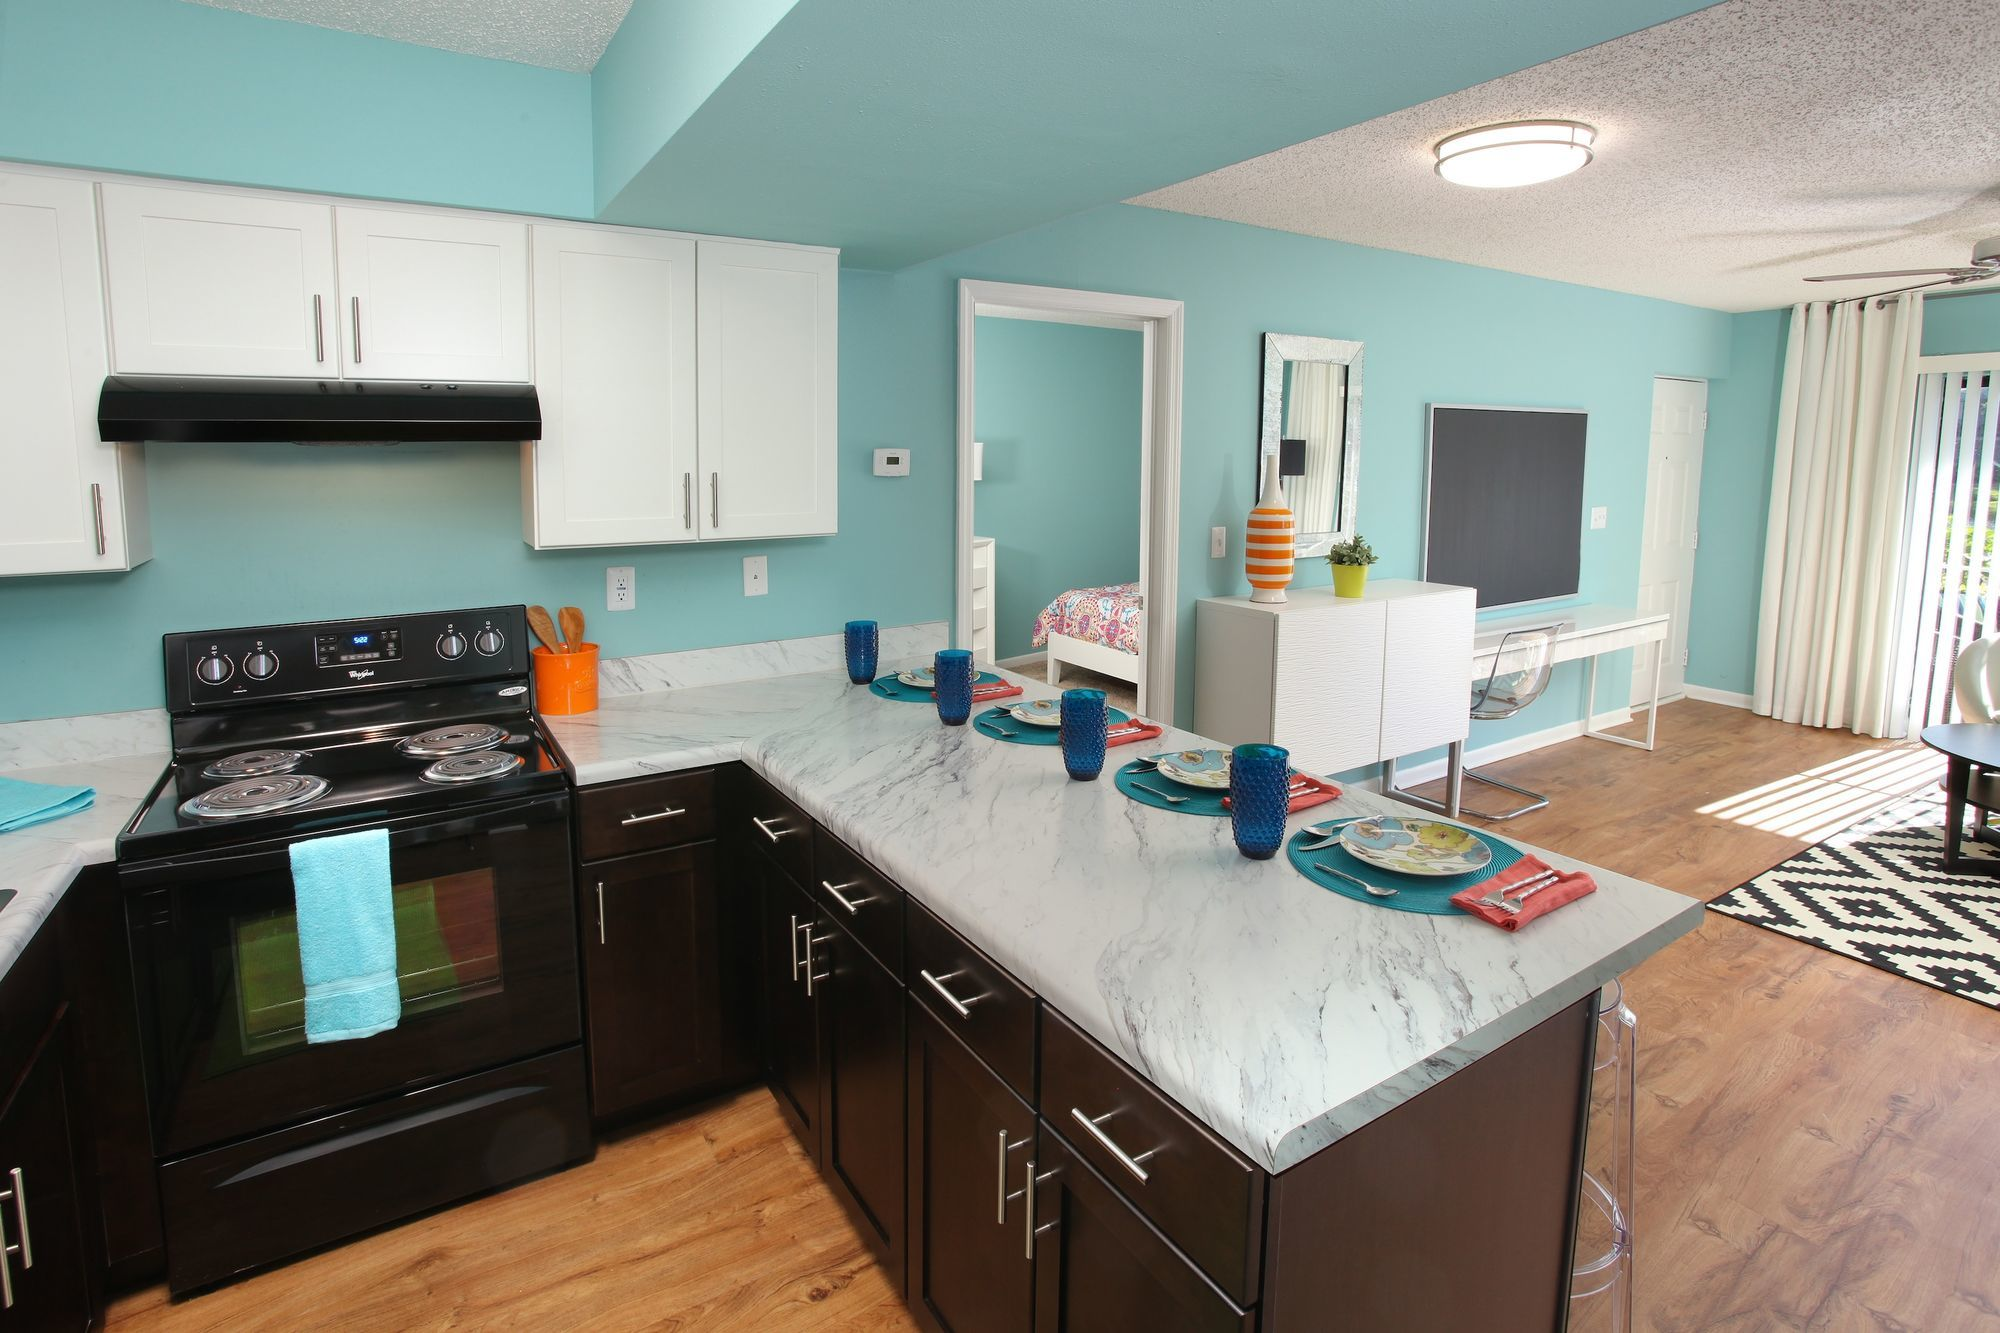 20 Best Apartments In Pinellas Park, FL (with pictures)!